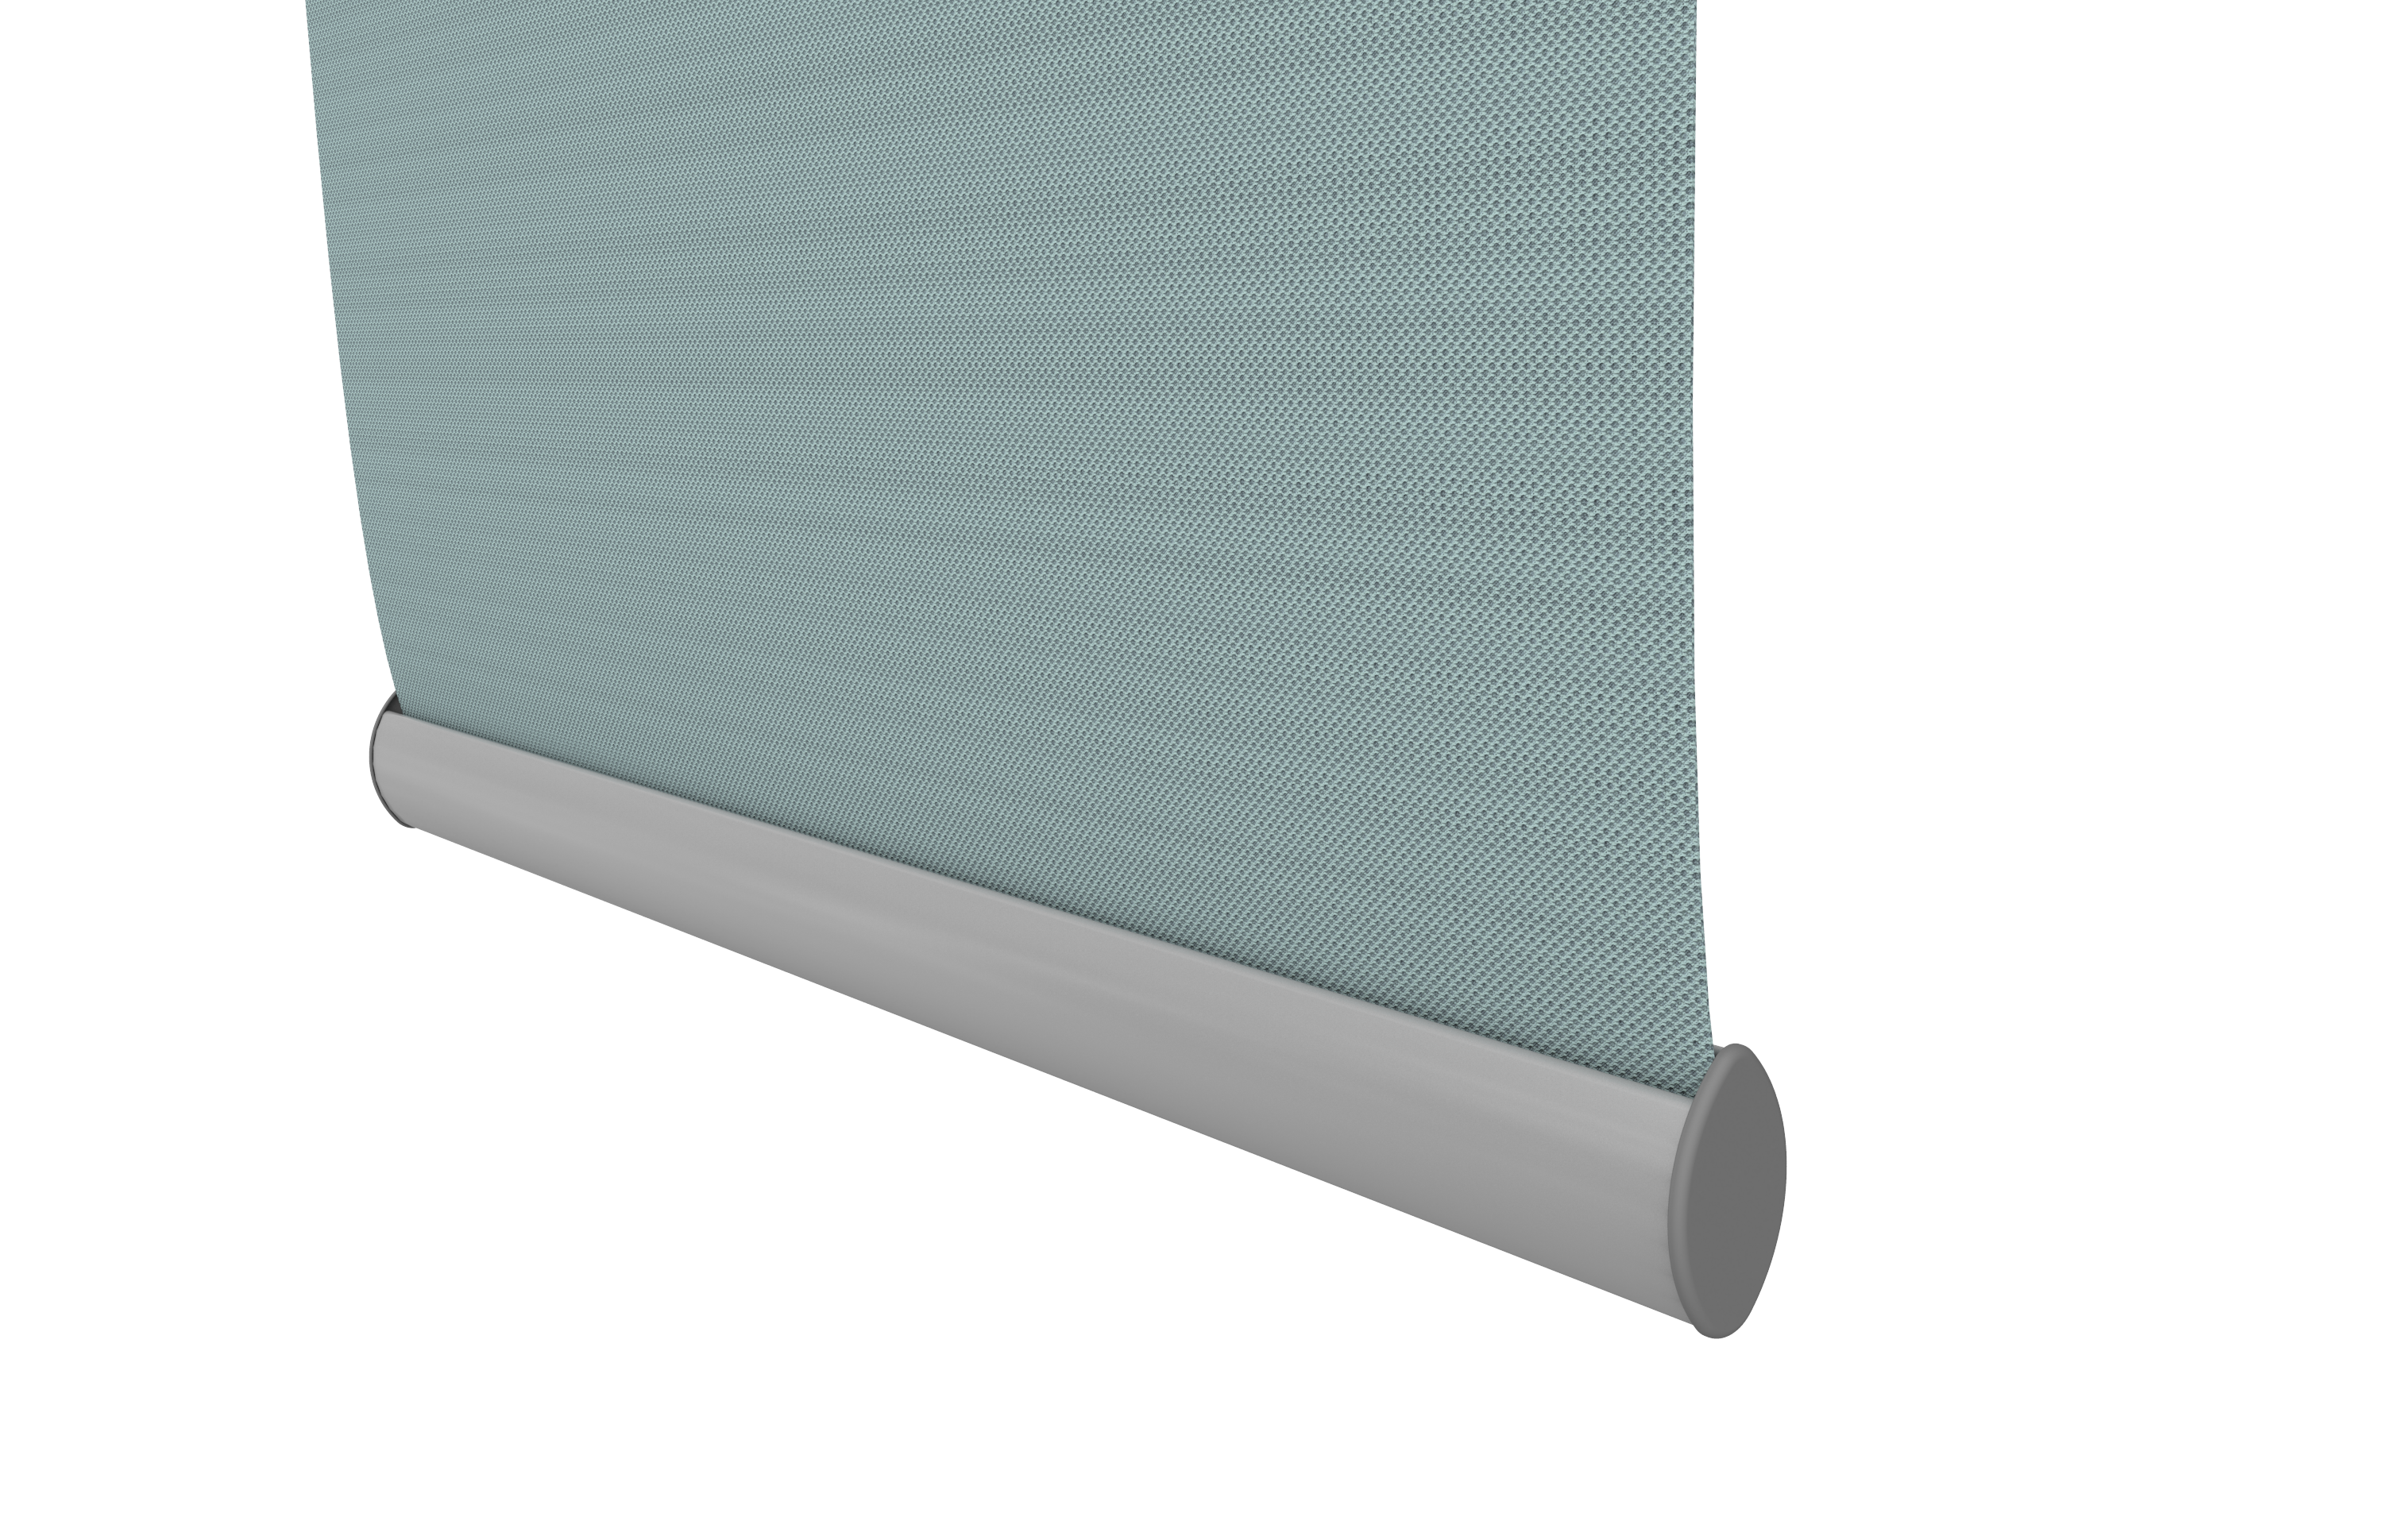 Roller Blinds Thermal Blockout Buy Online The Blind Store